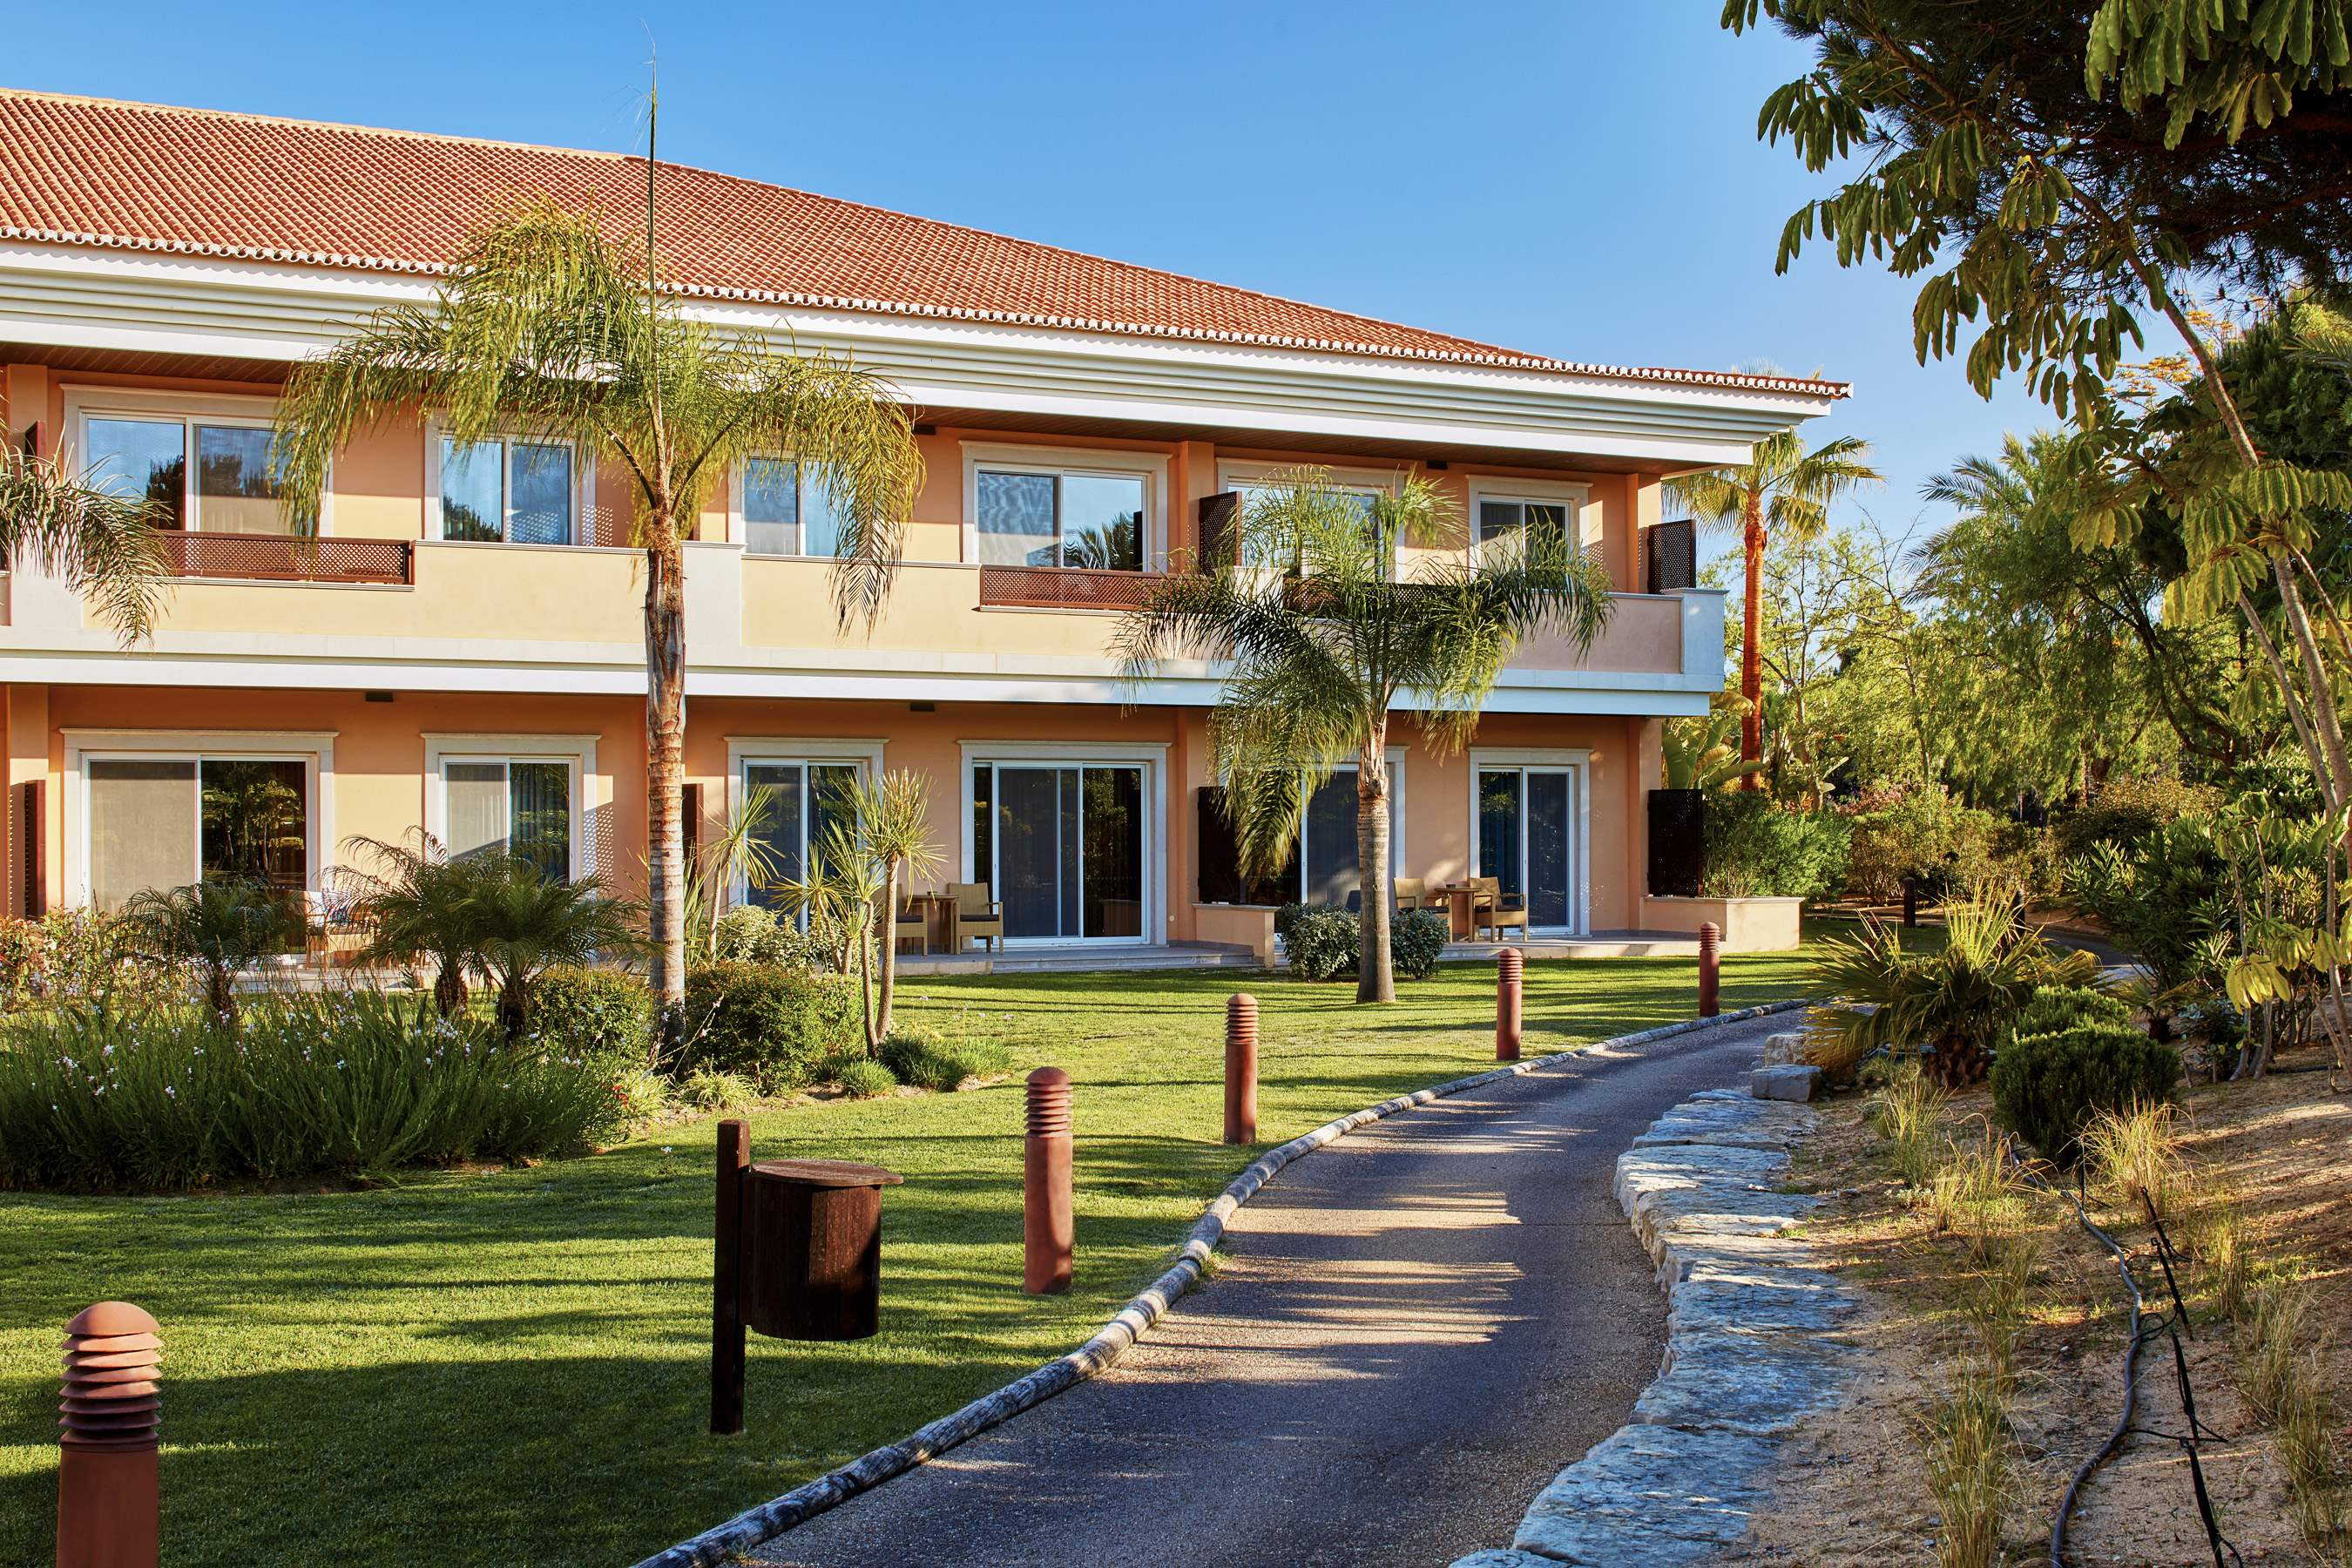 Wyndham Grand Algarve 1 Bedroom, Deluxe Suite, Pool Side ,Room Only , 1 bedroom apartment in Wyndham Grand Algarve, Algarve Photo #23